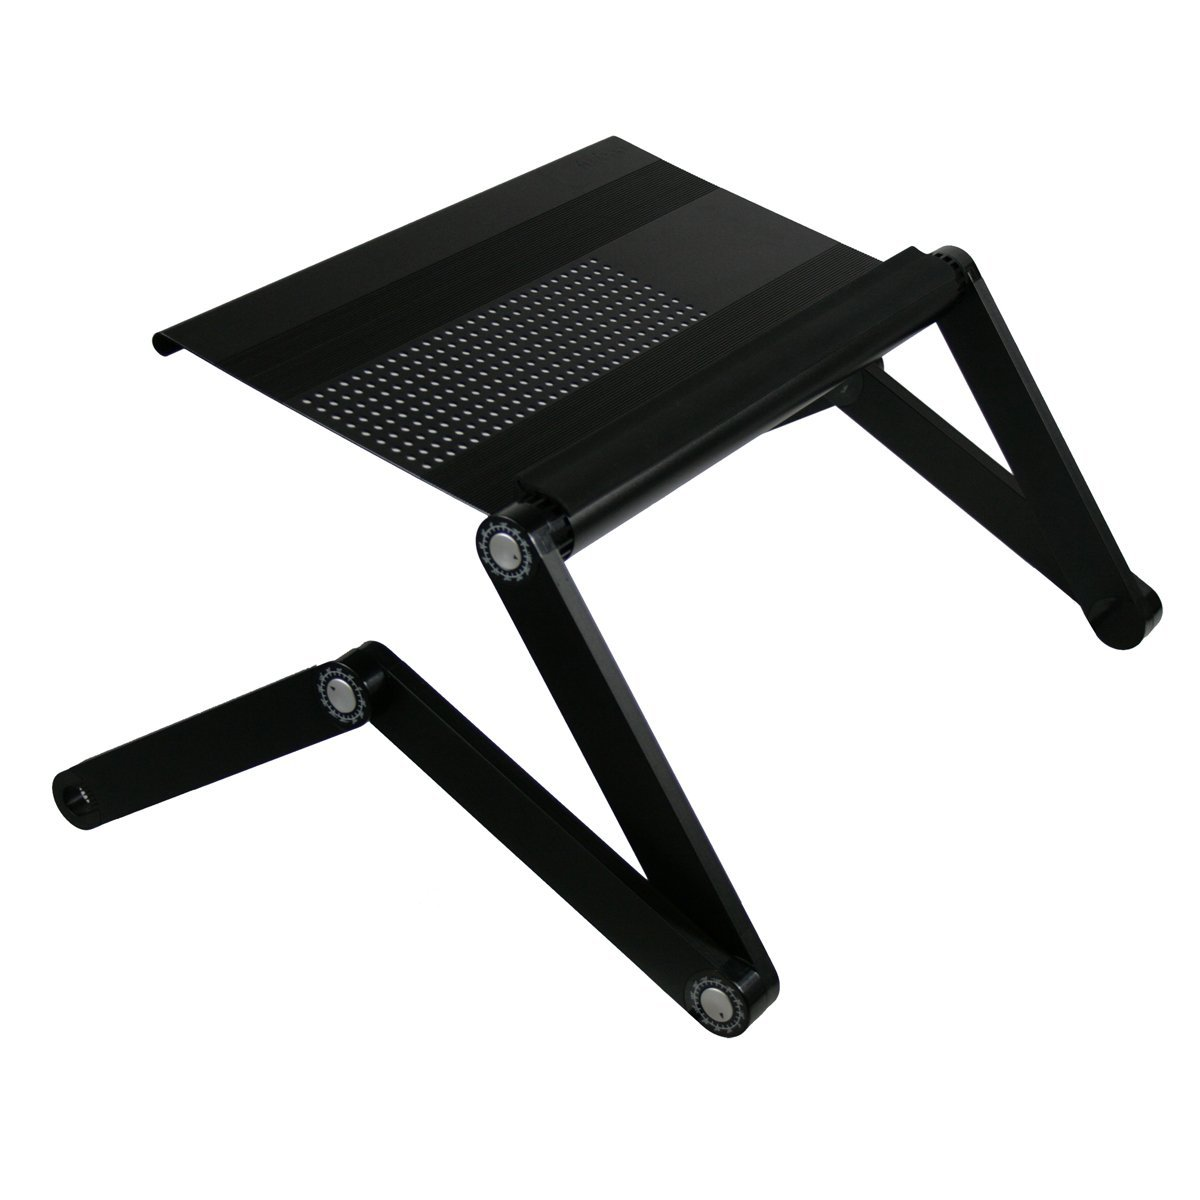 portable product truly affordable standing up oristand singapore stand run super desk a